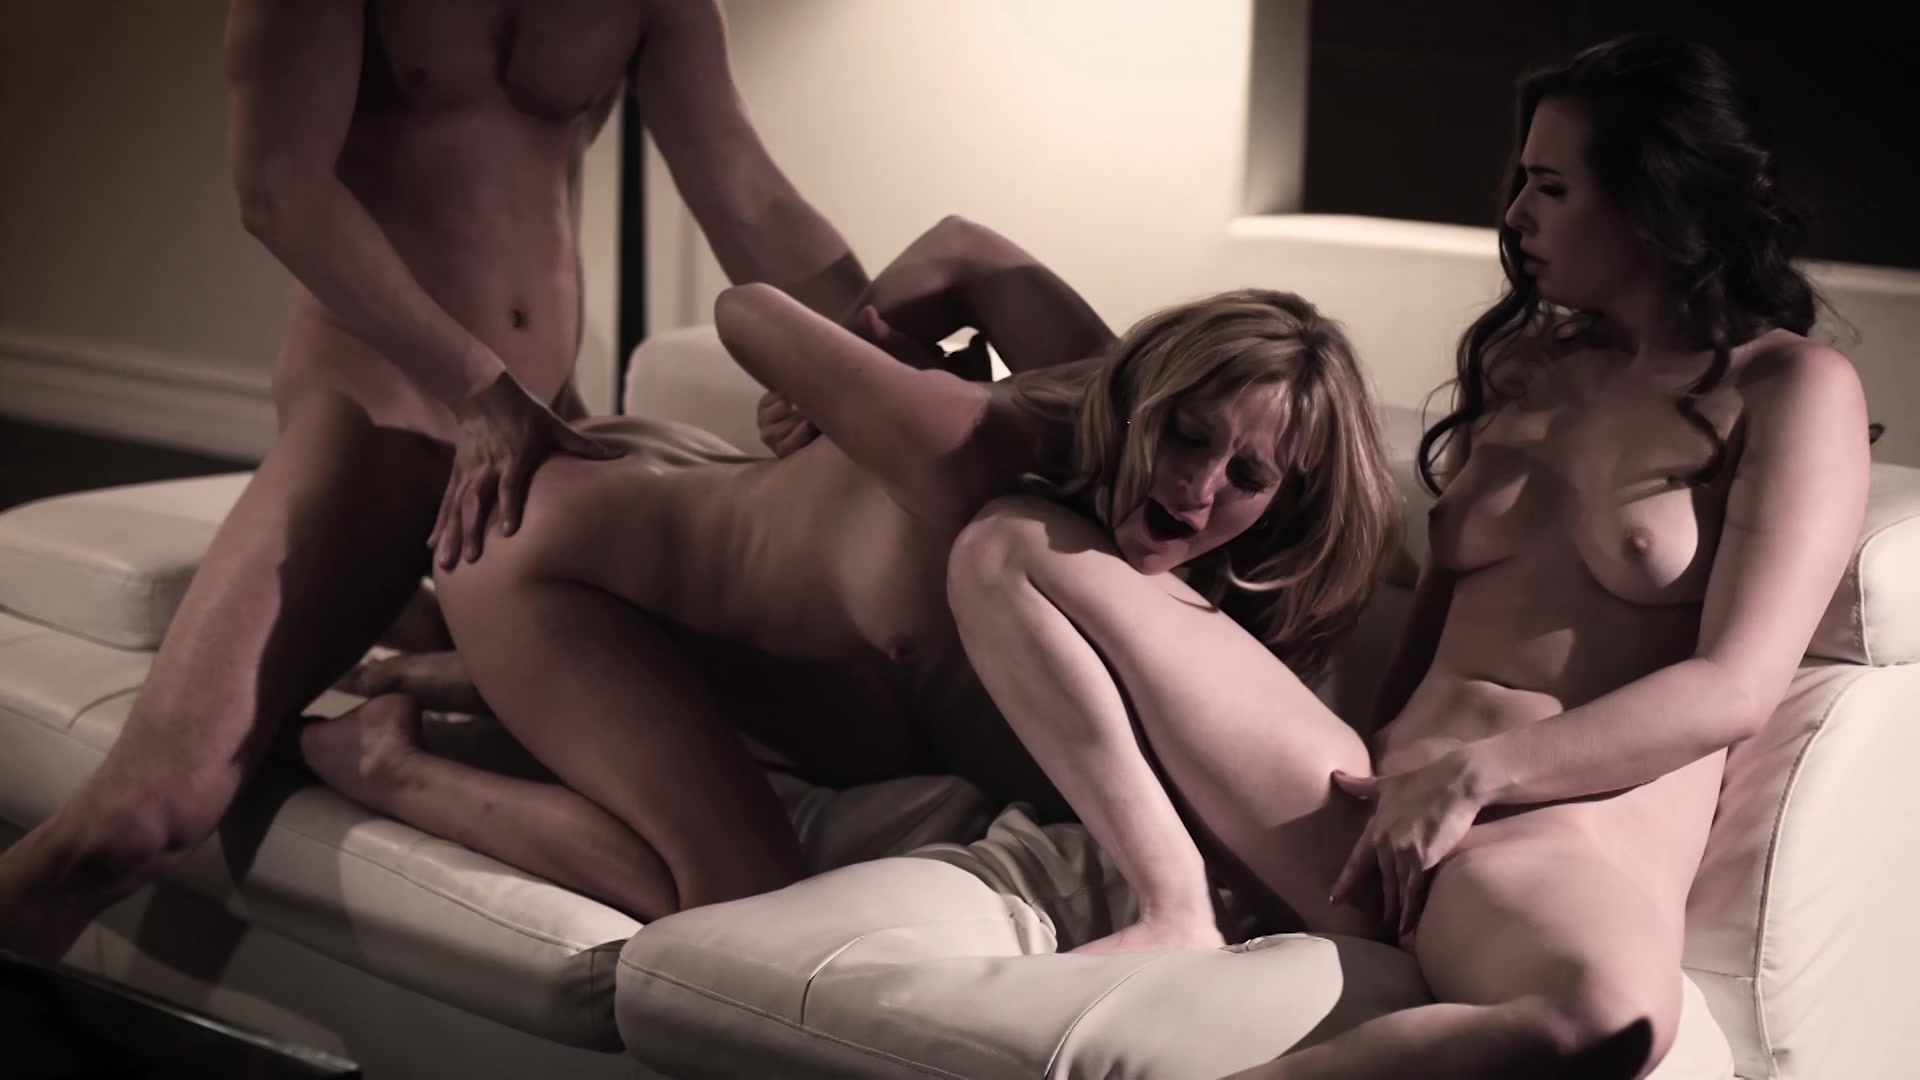 T threesome with heshes 15